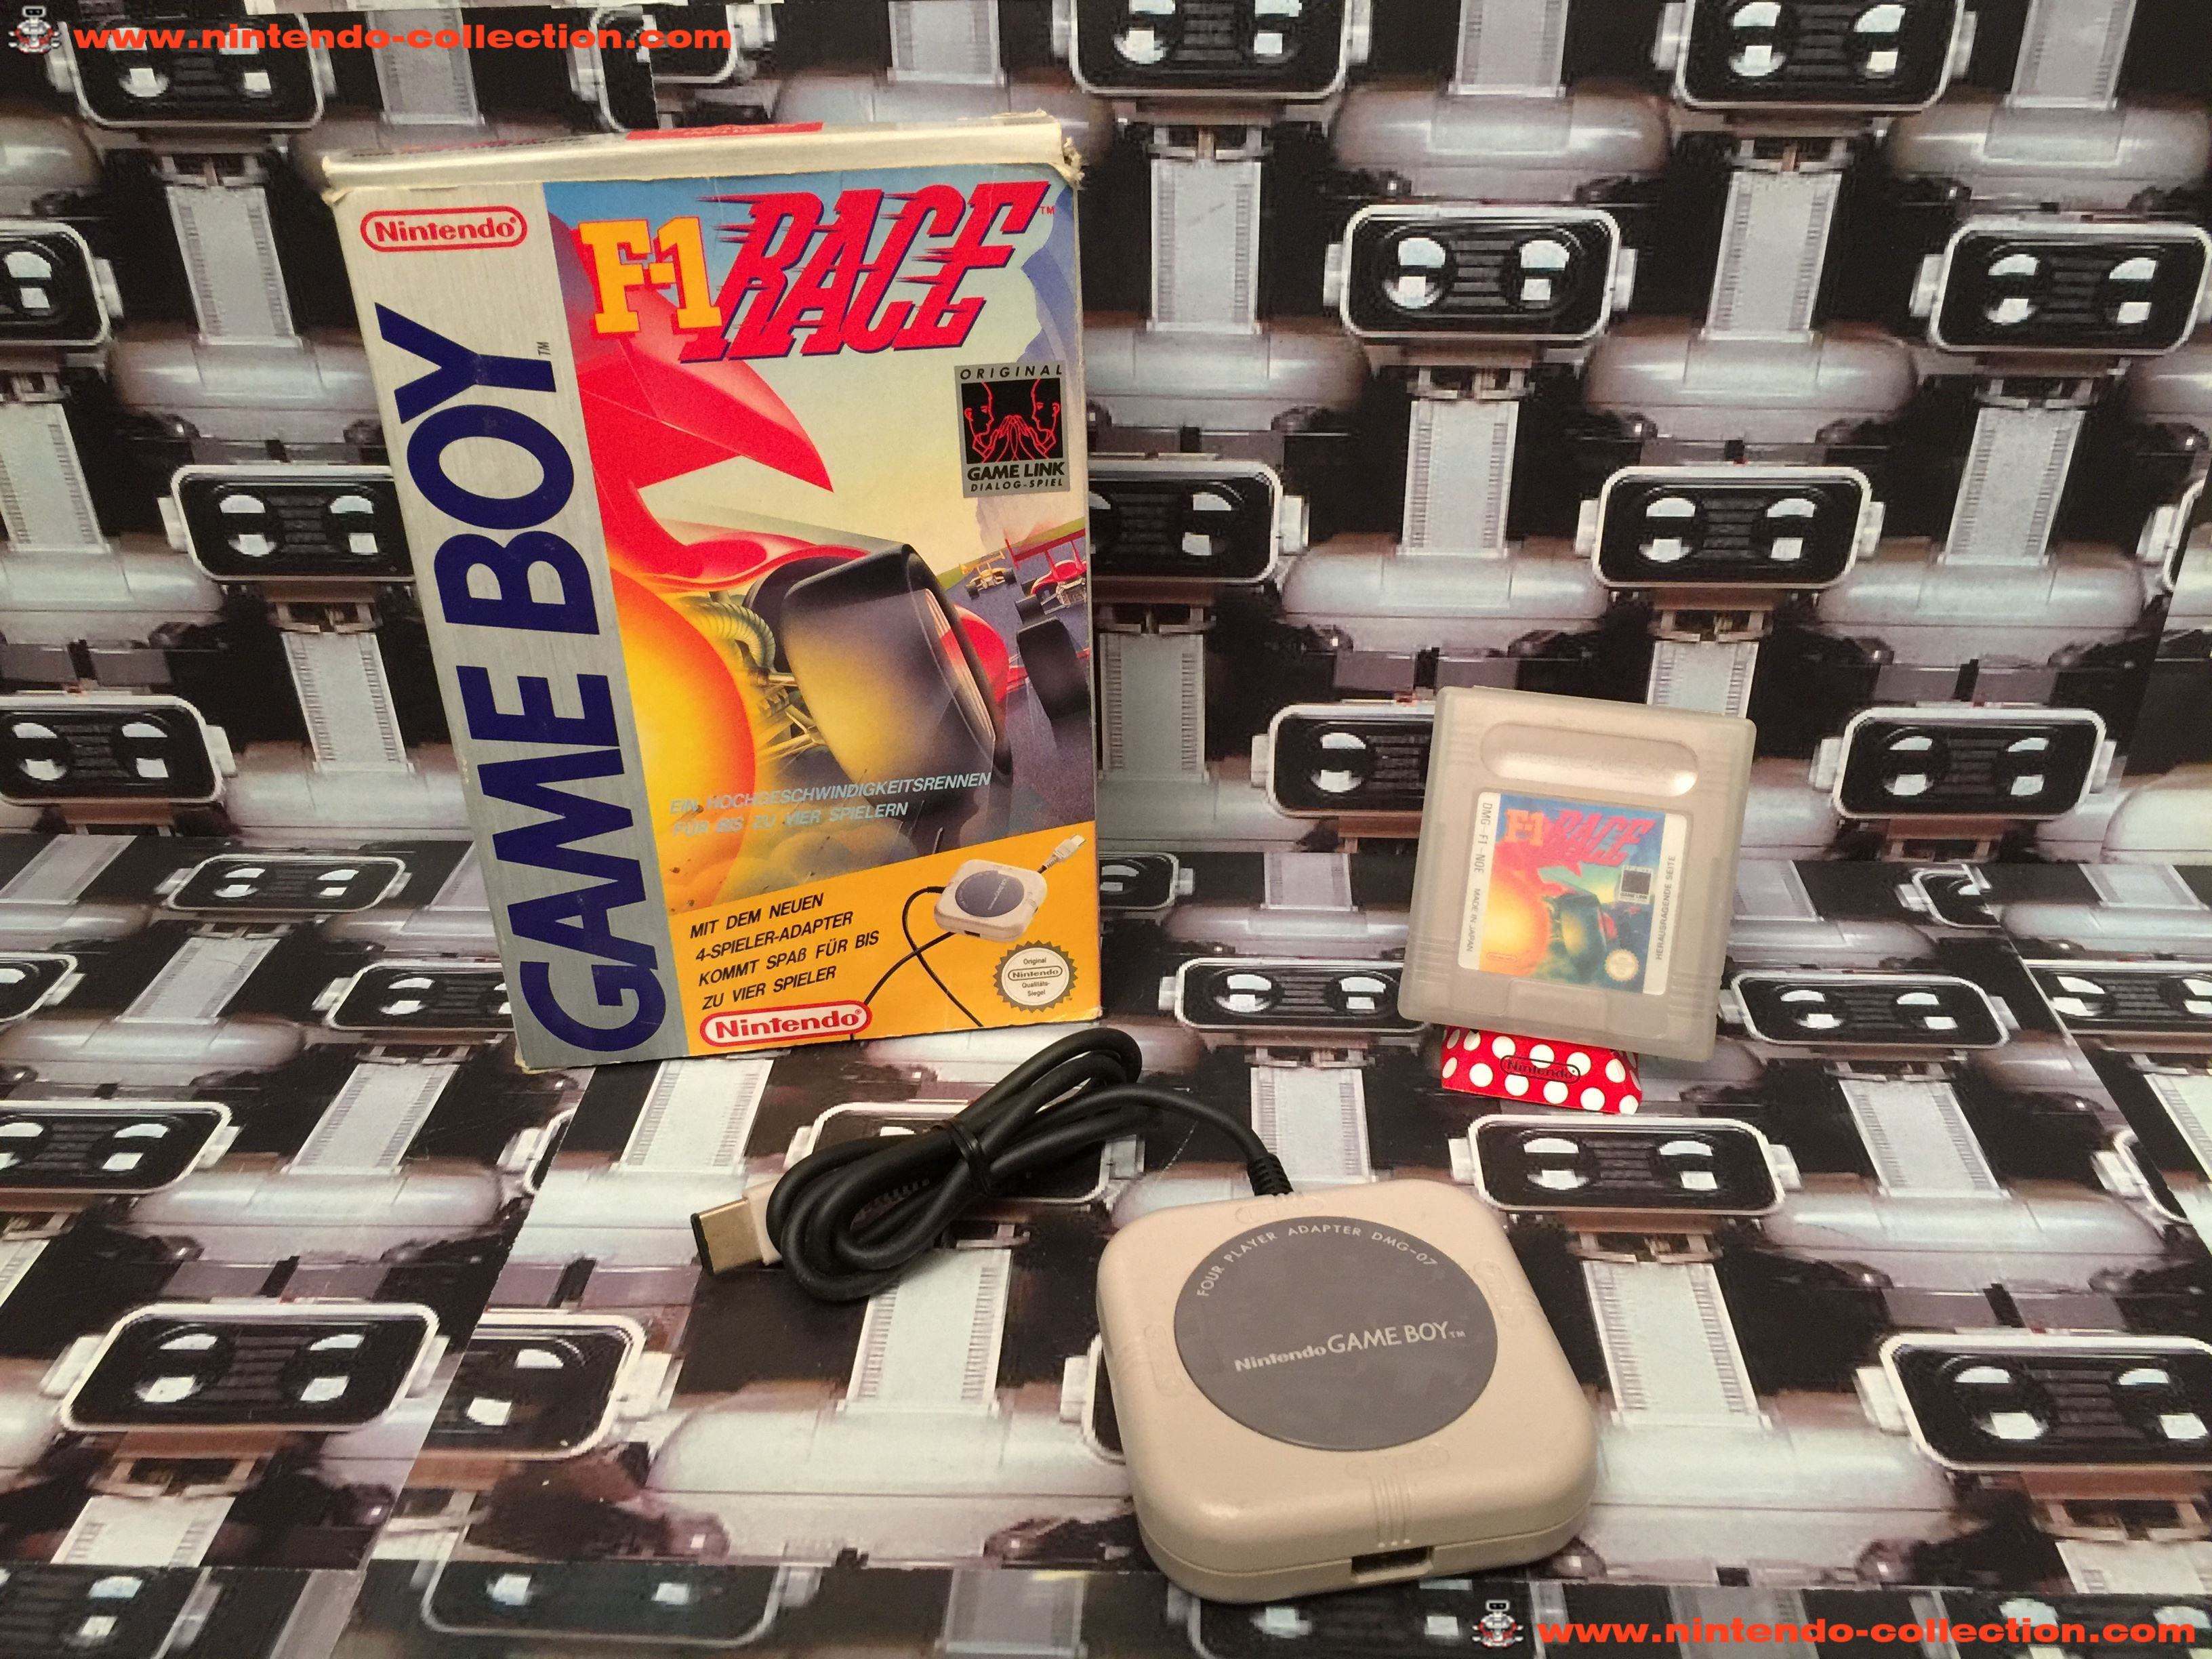 www.nintendo-collection.com - Gameboy Game Jeux F-1 Race +4 player Link